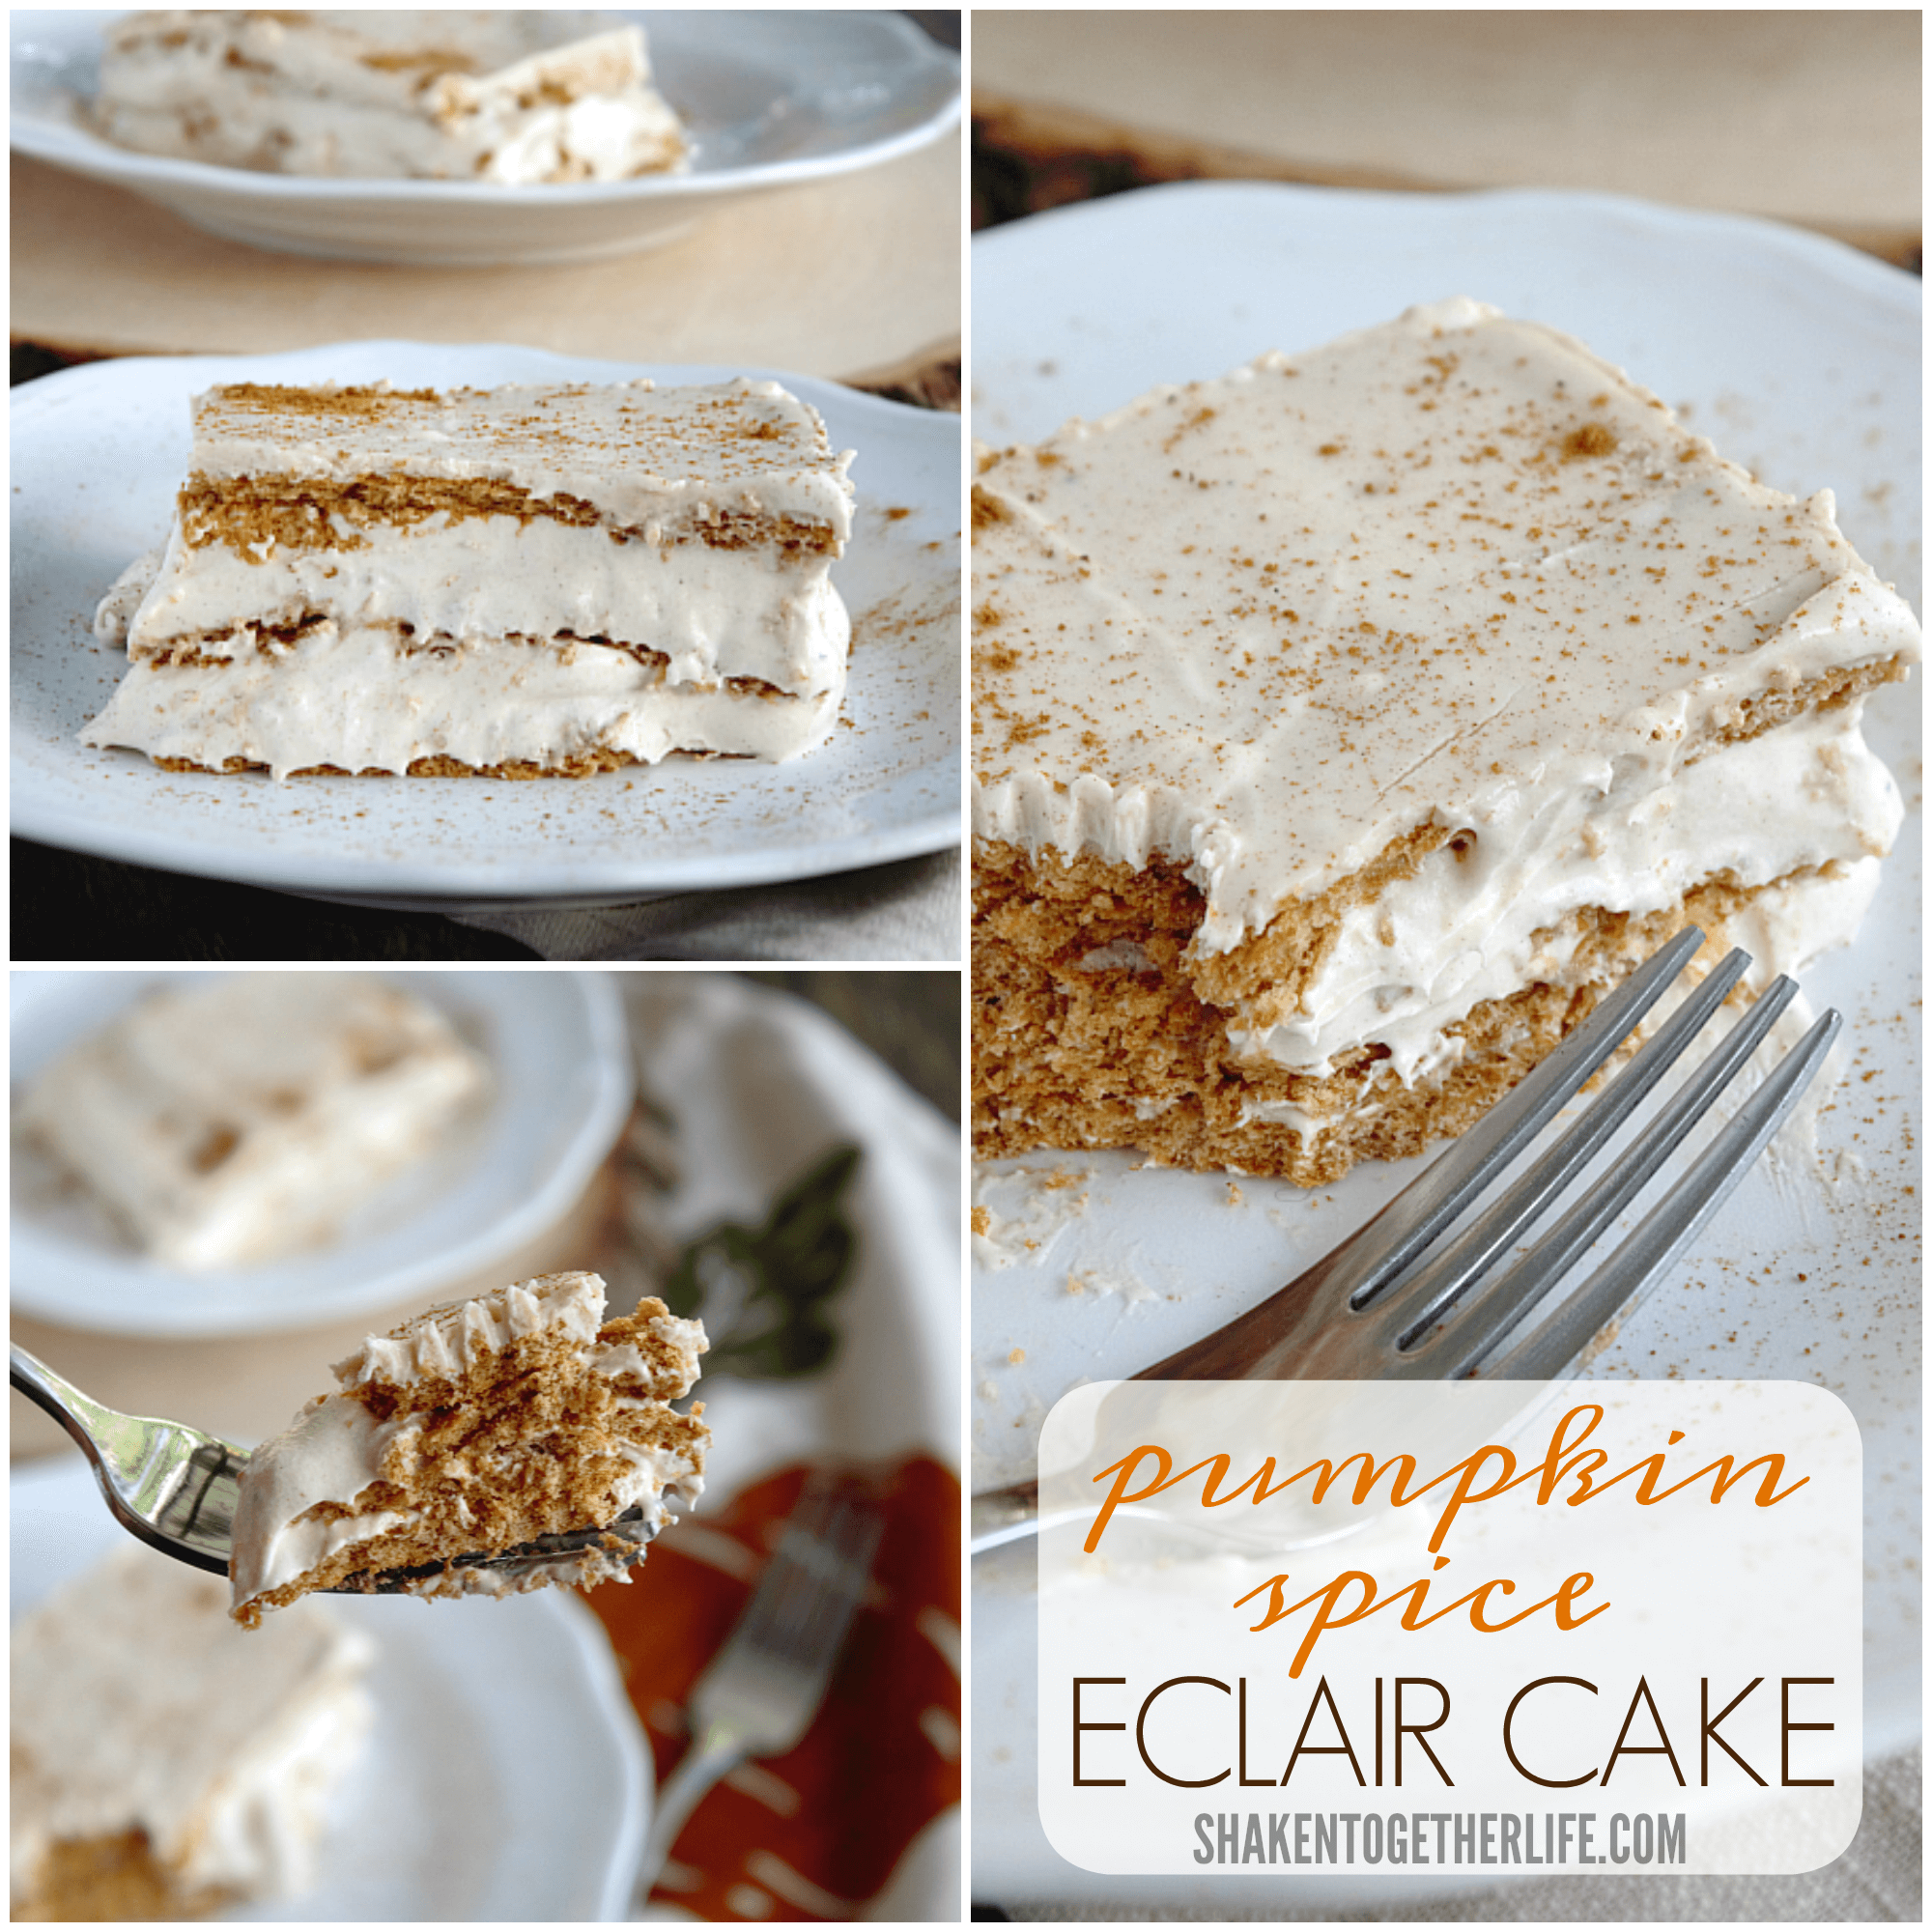 Pumpkin Spice Eclair Cake is the ultimate Fall no bake dessert!